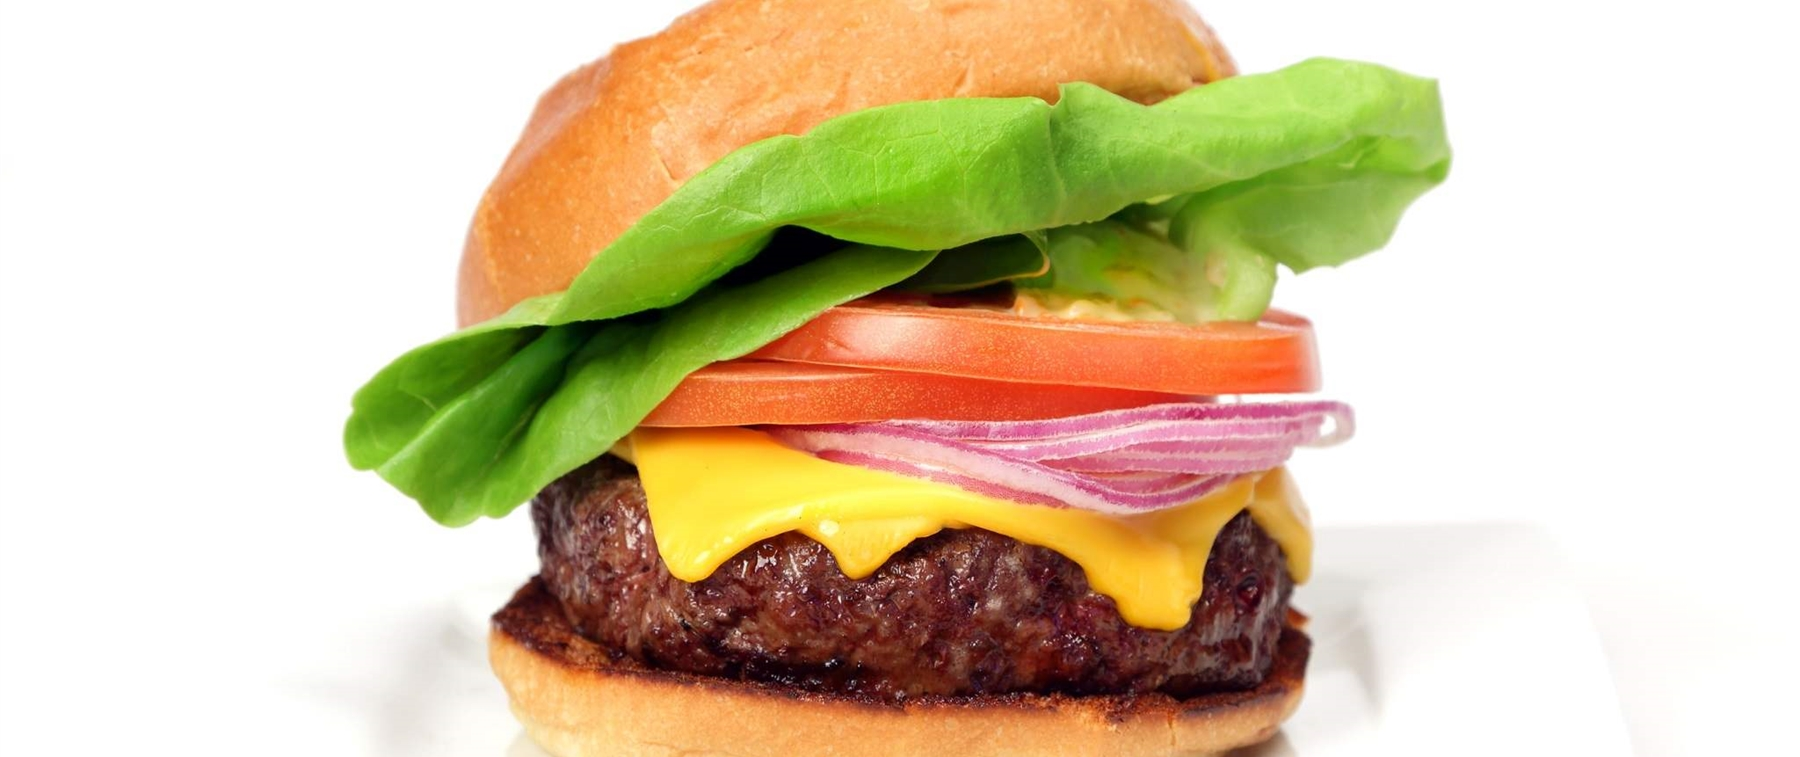 Cheeseburger With Lettuce, Tomato And Onions With White Background